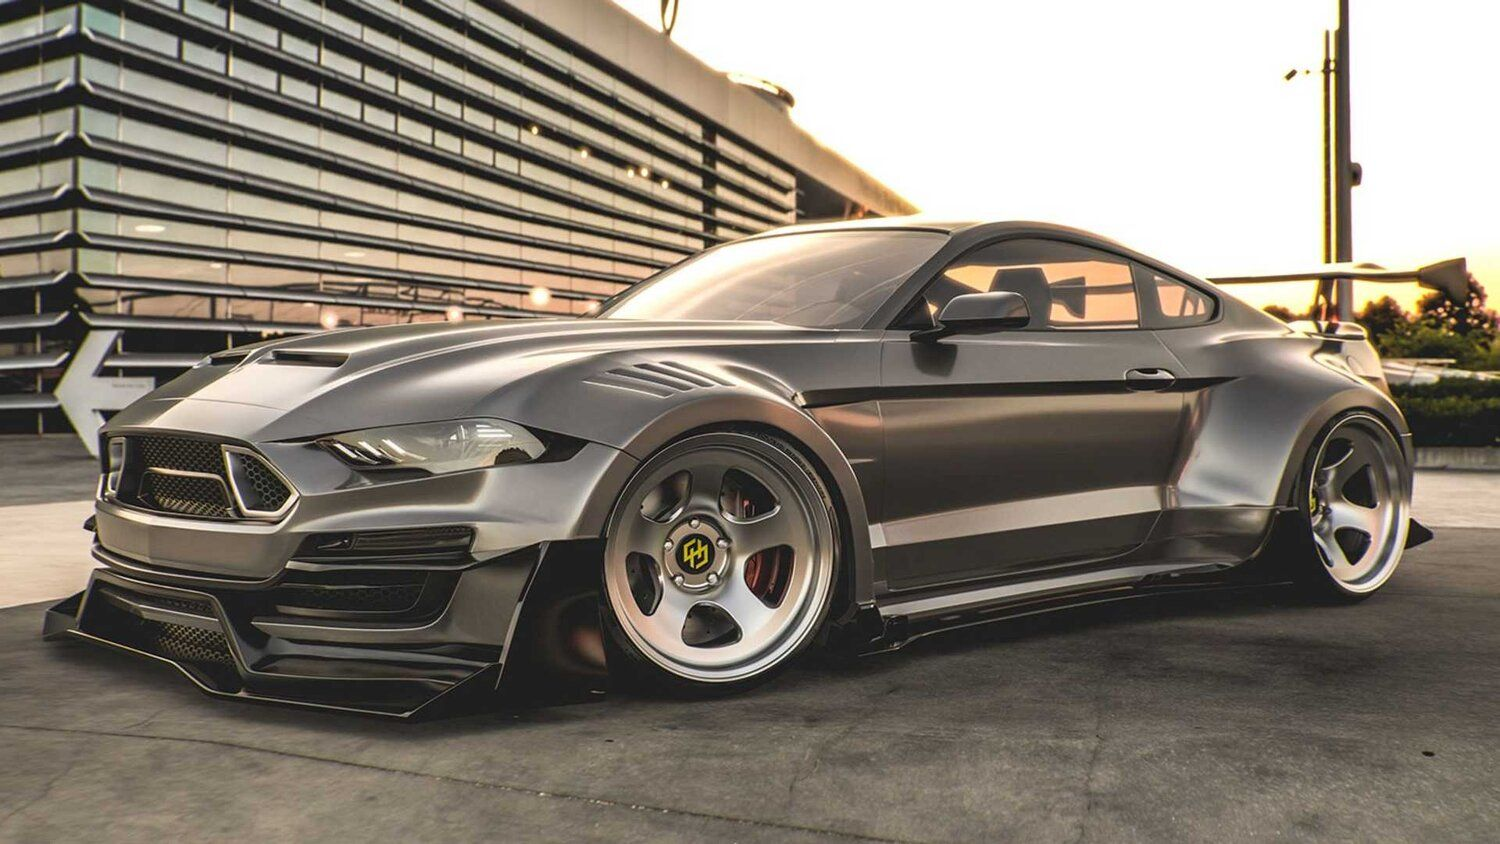 2020 Ford Mustang Shelby Super Snake Rendered With Wild Body Kit